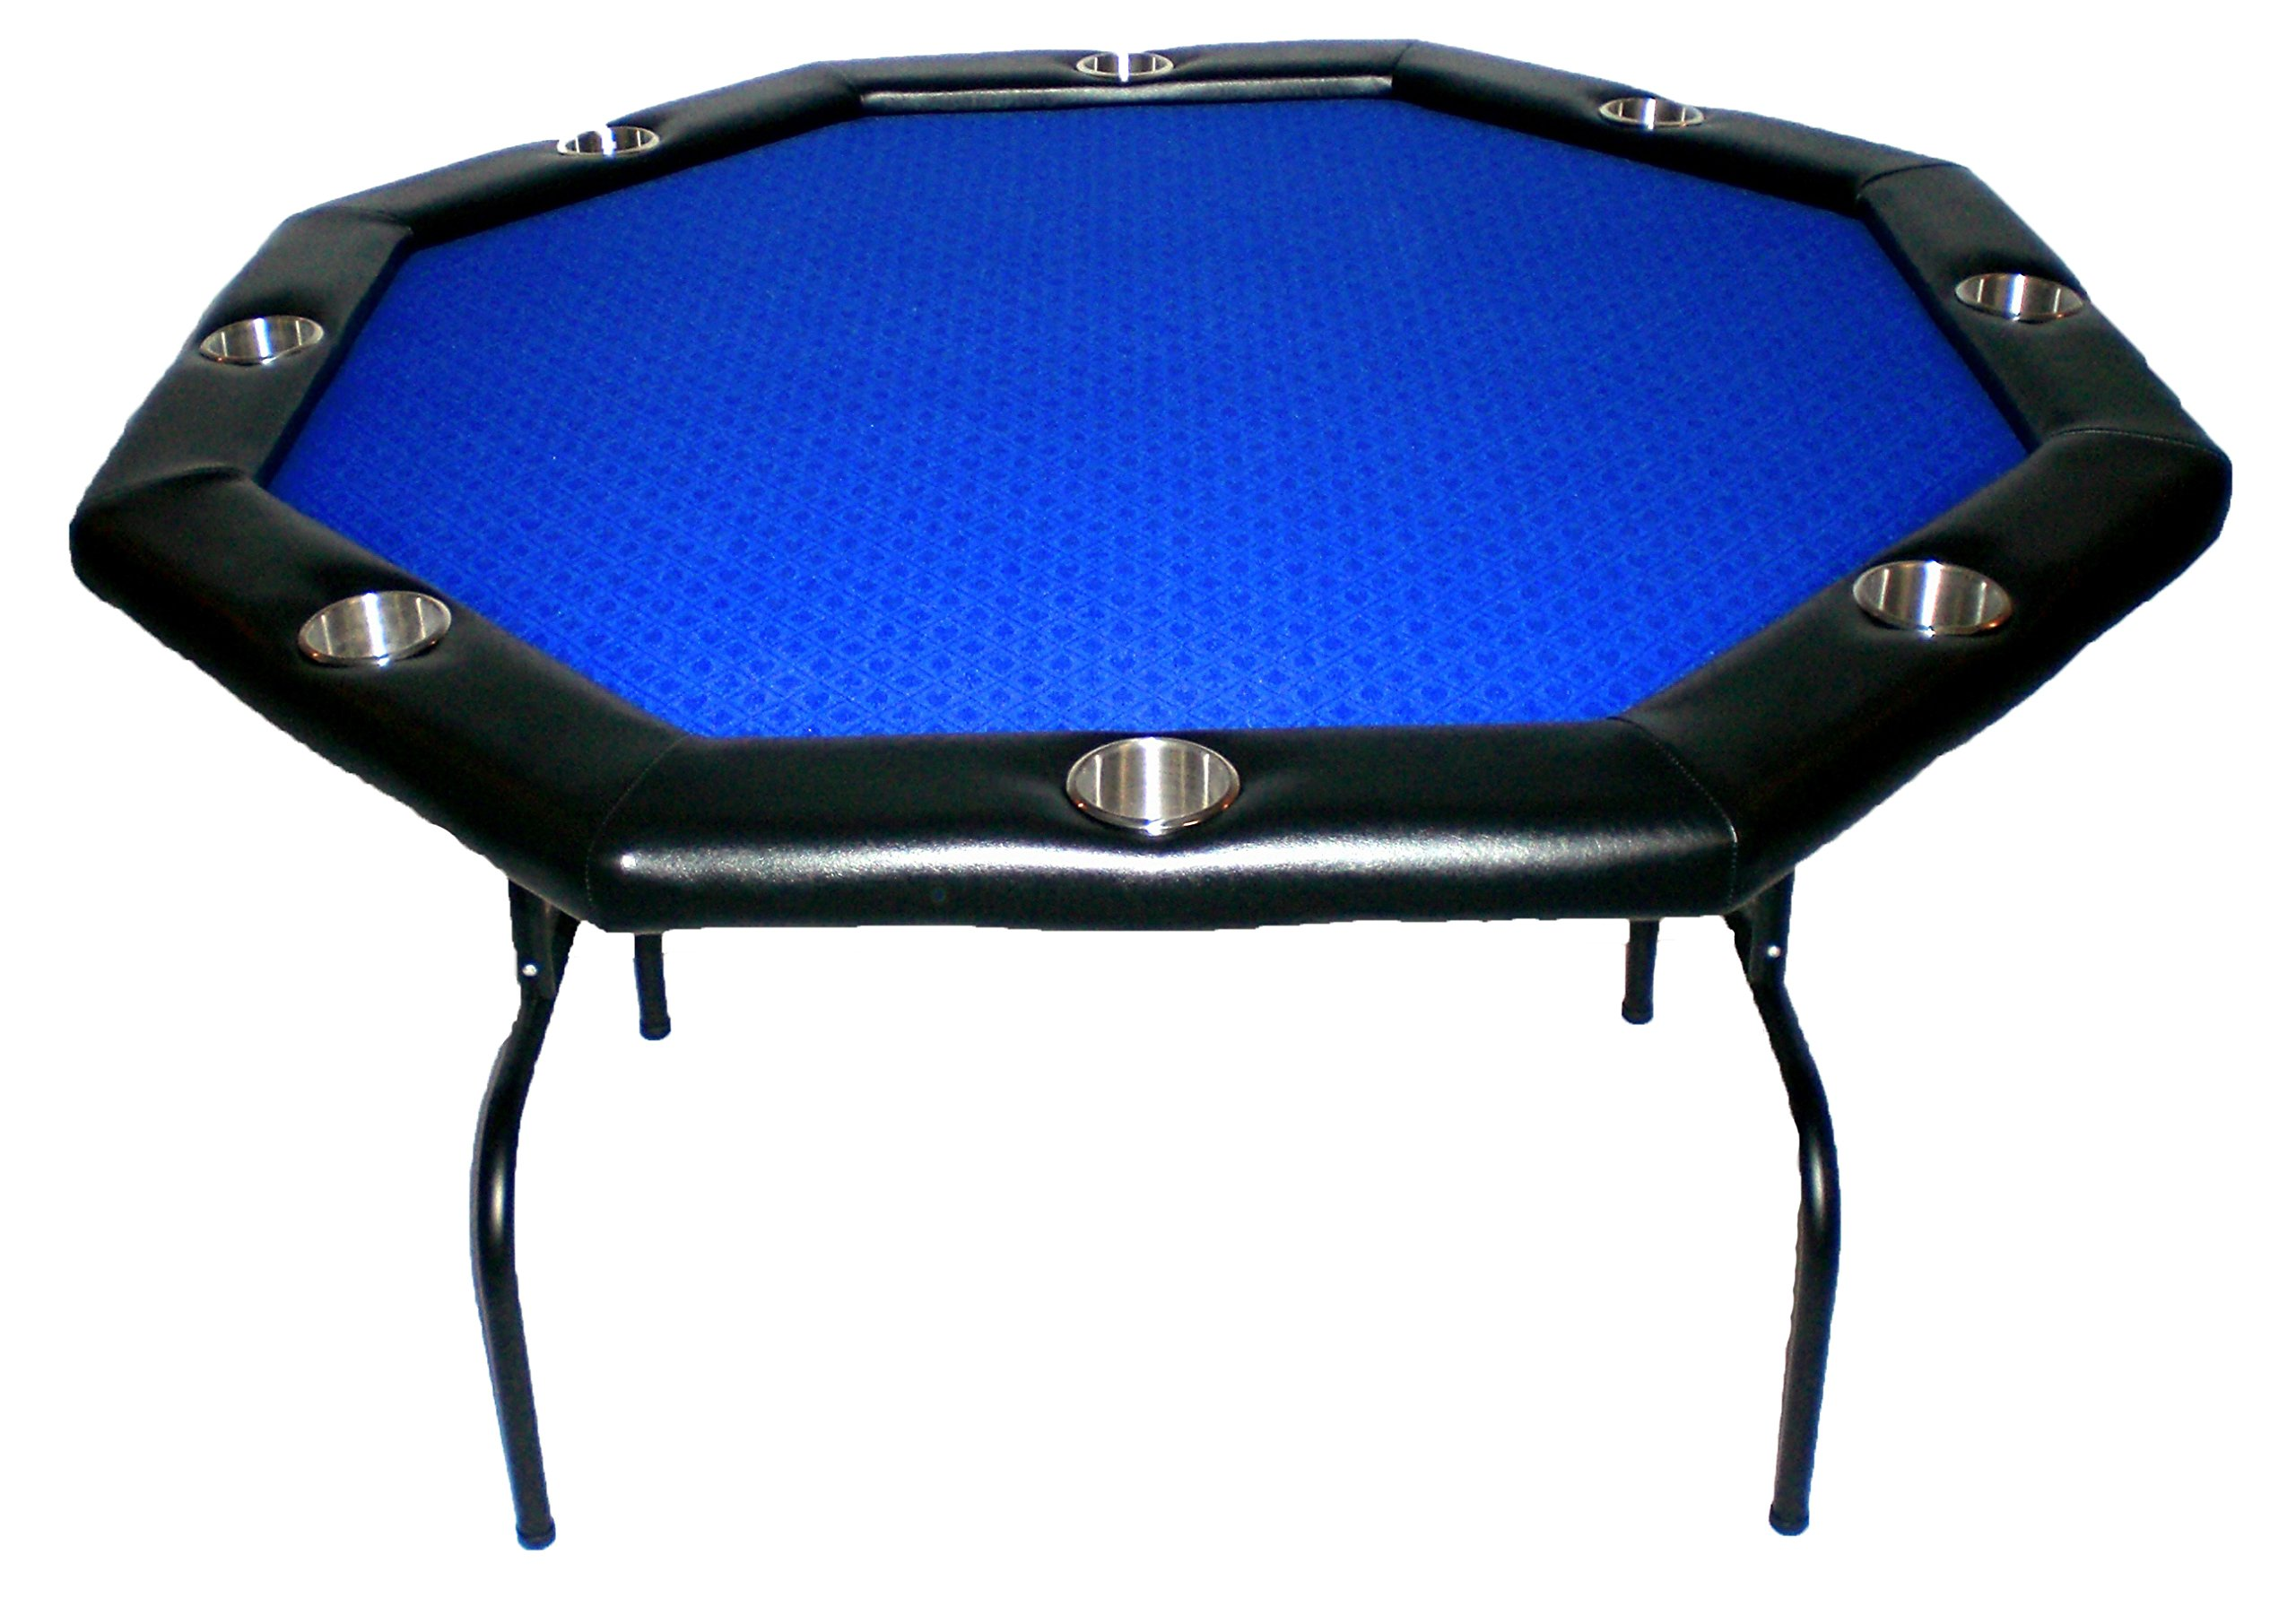 Suited Speed Cloth ROYAL BLUE Texas Holdem Poker Table Cloth